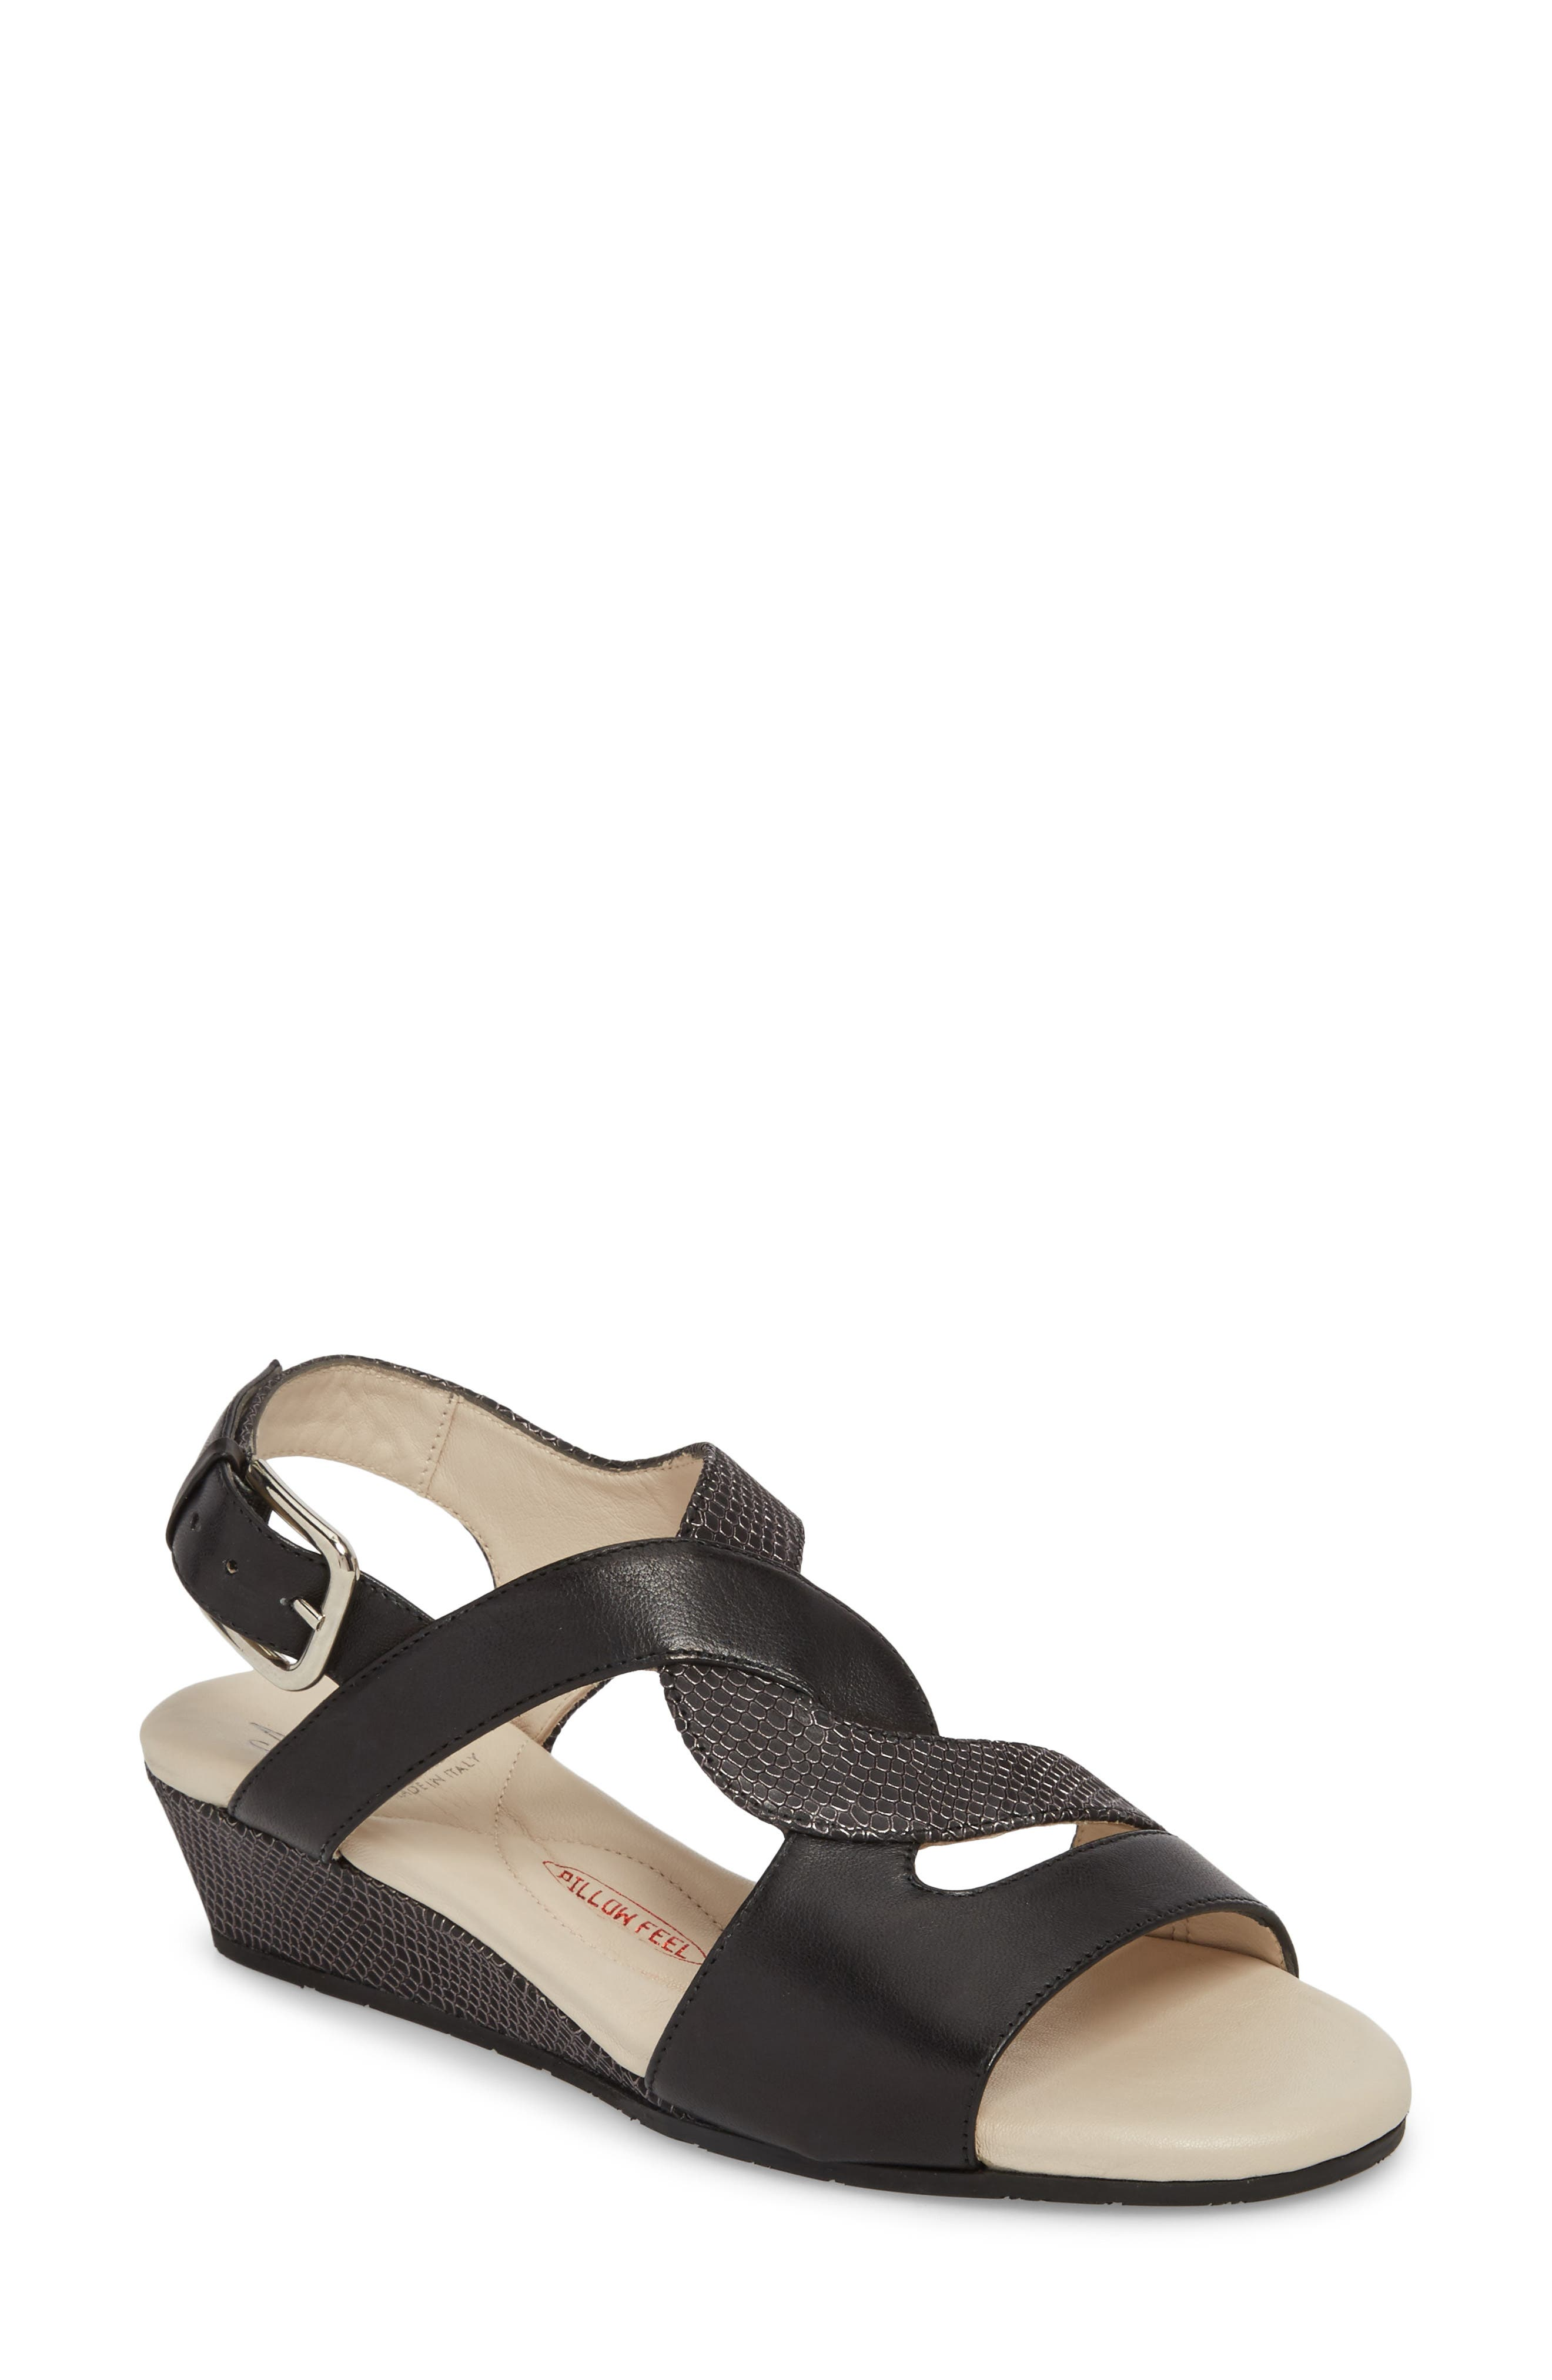 Morosa Wedge Sandal,                             Main thumbnail 1, color,                             GRAPHITE LEATHER